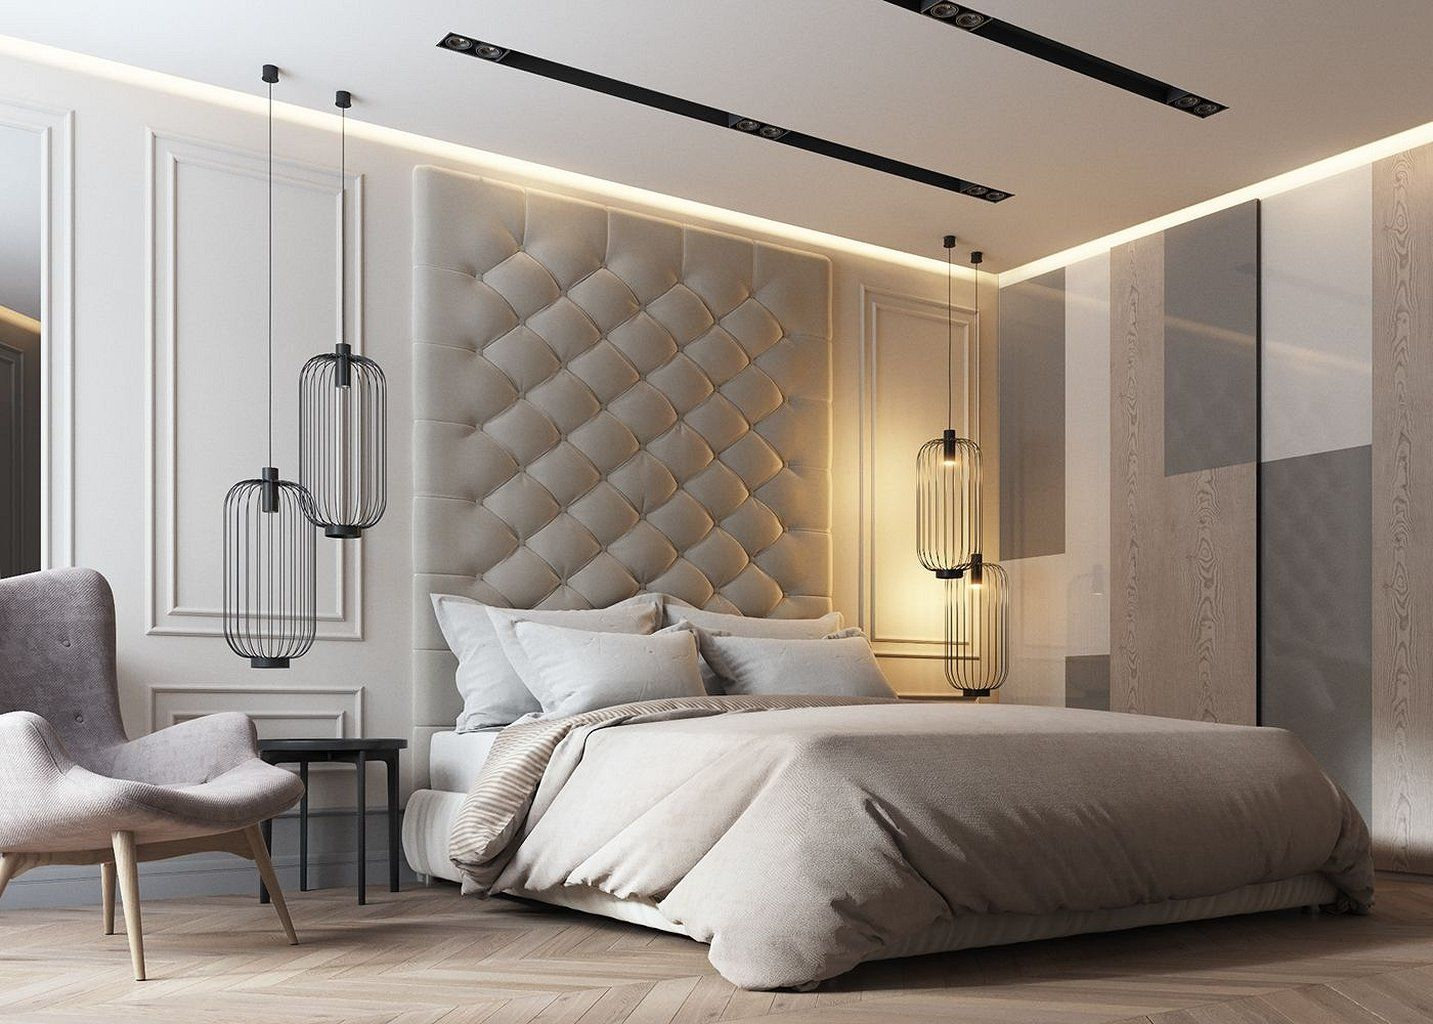 105 Inspiring Examples Of Contemporary Interior Design Https Www Mobmasker Com 105 Inspiring Example Modern Bedroom Design Classic Bedroom Luxurious Bedrooms